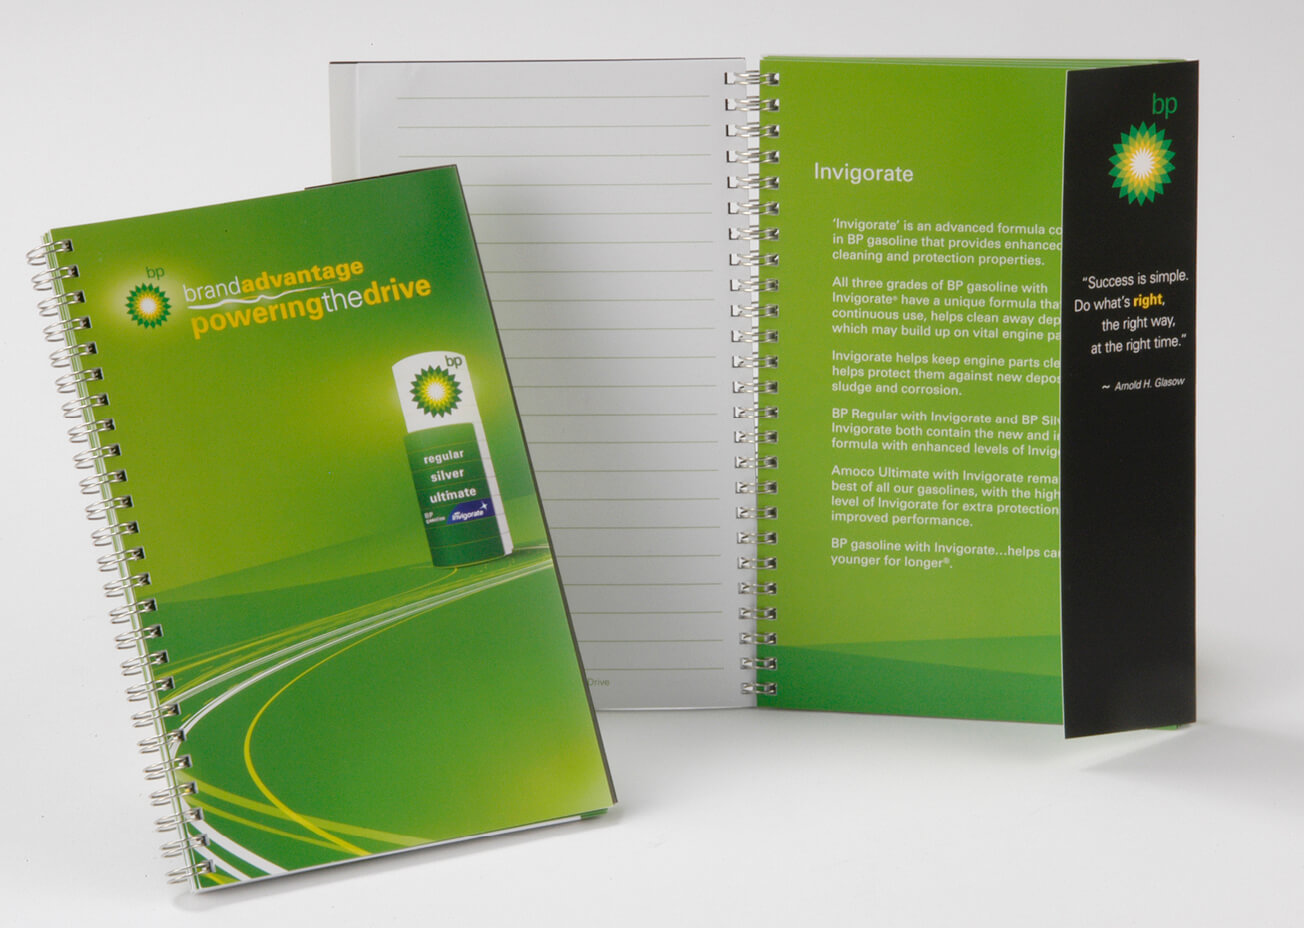 golin bp power the drive notebook image